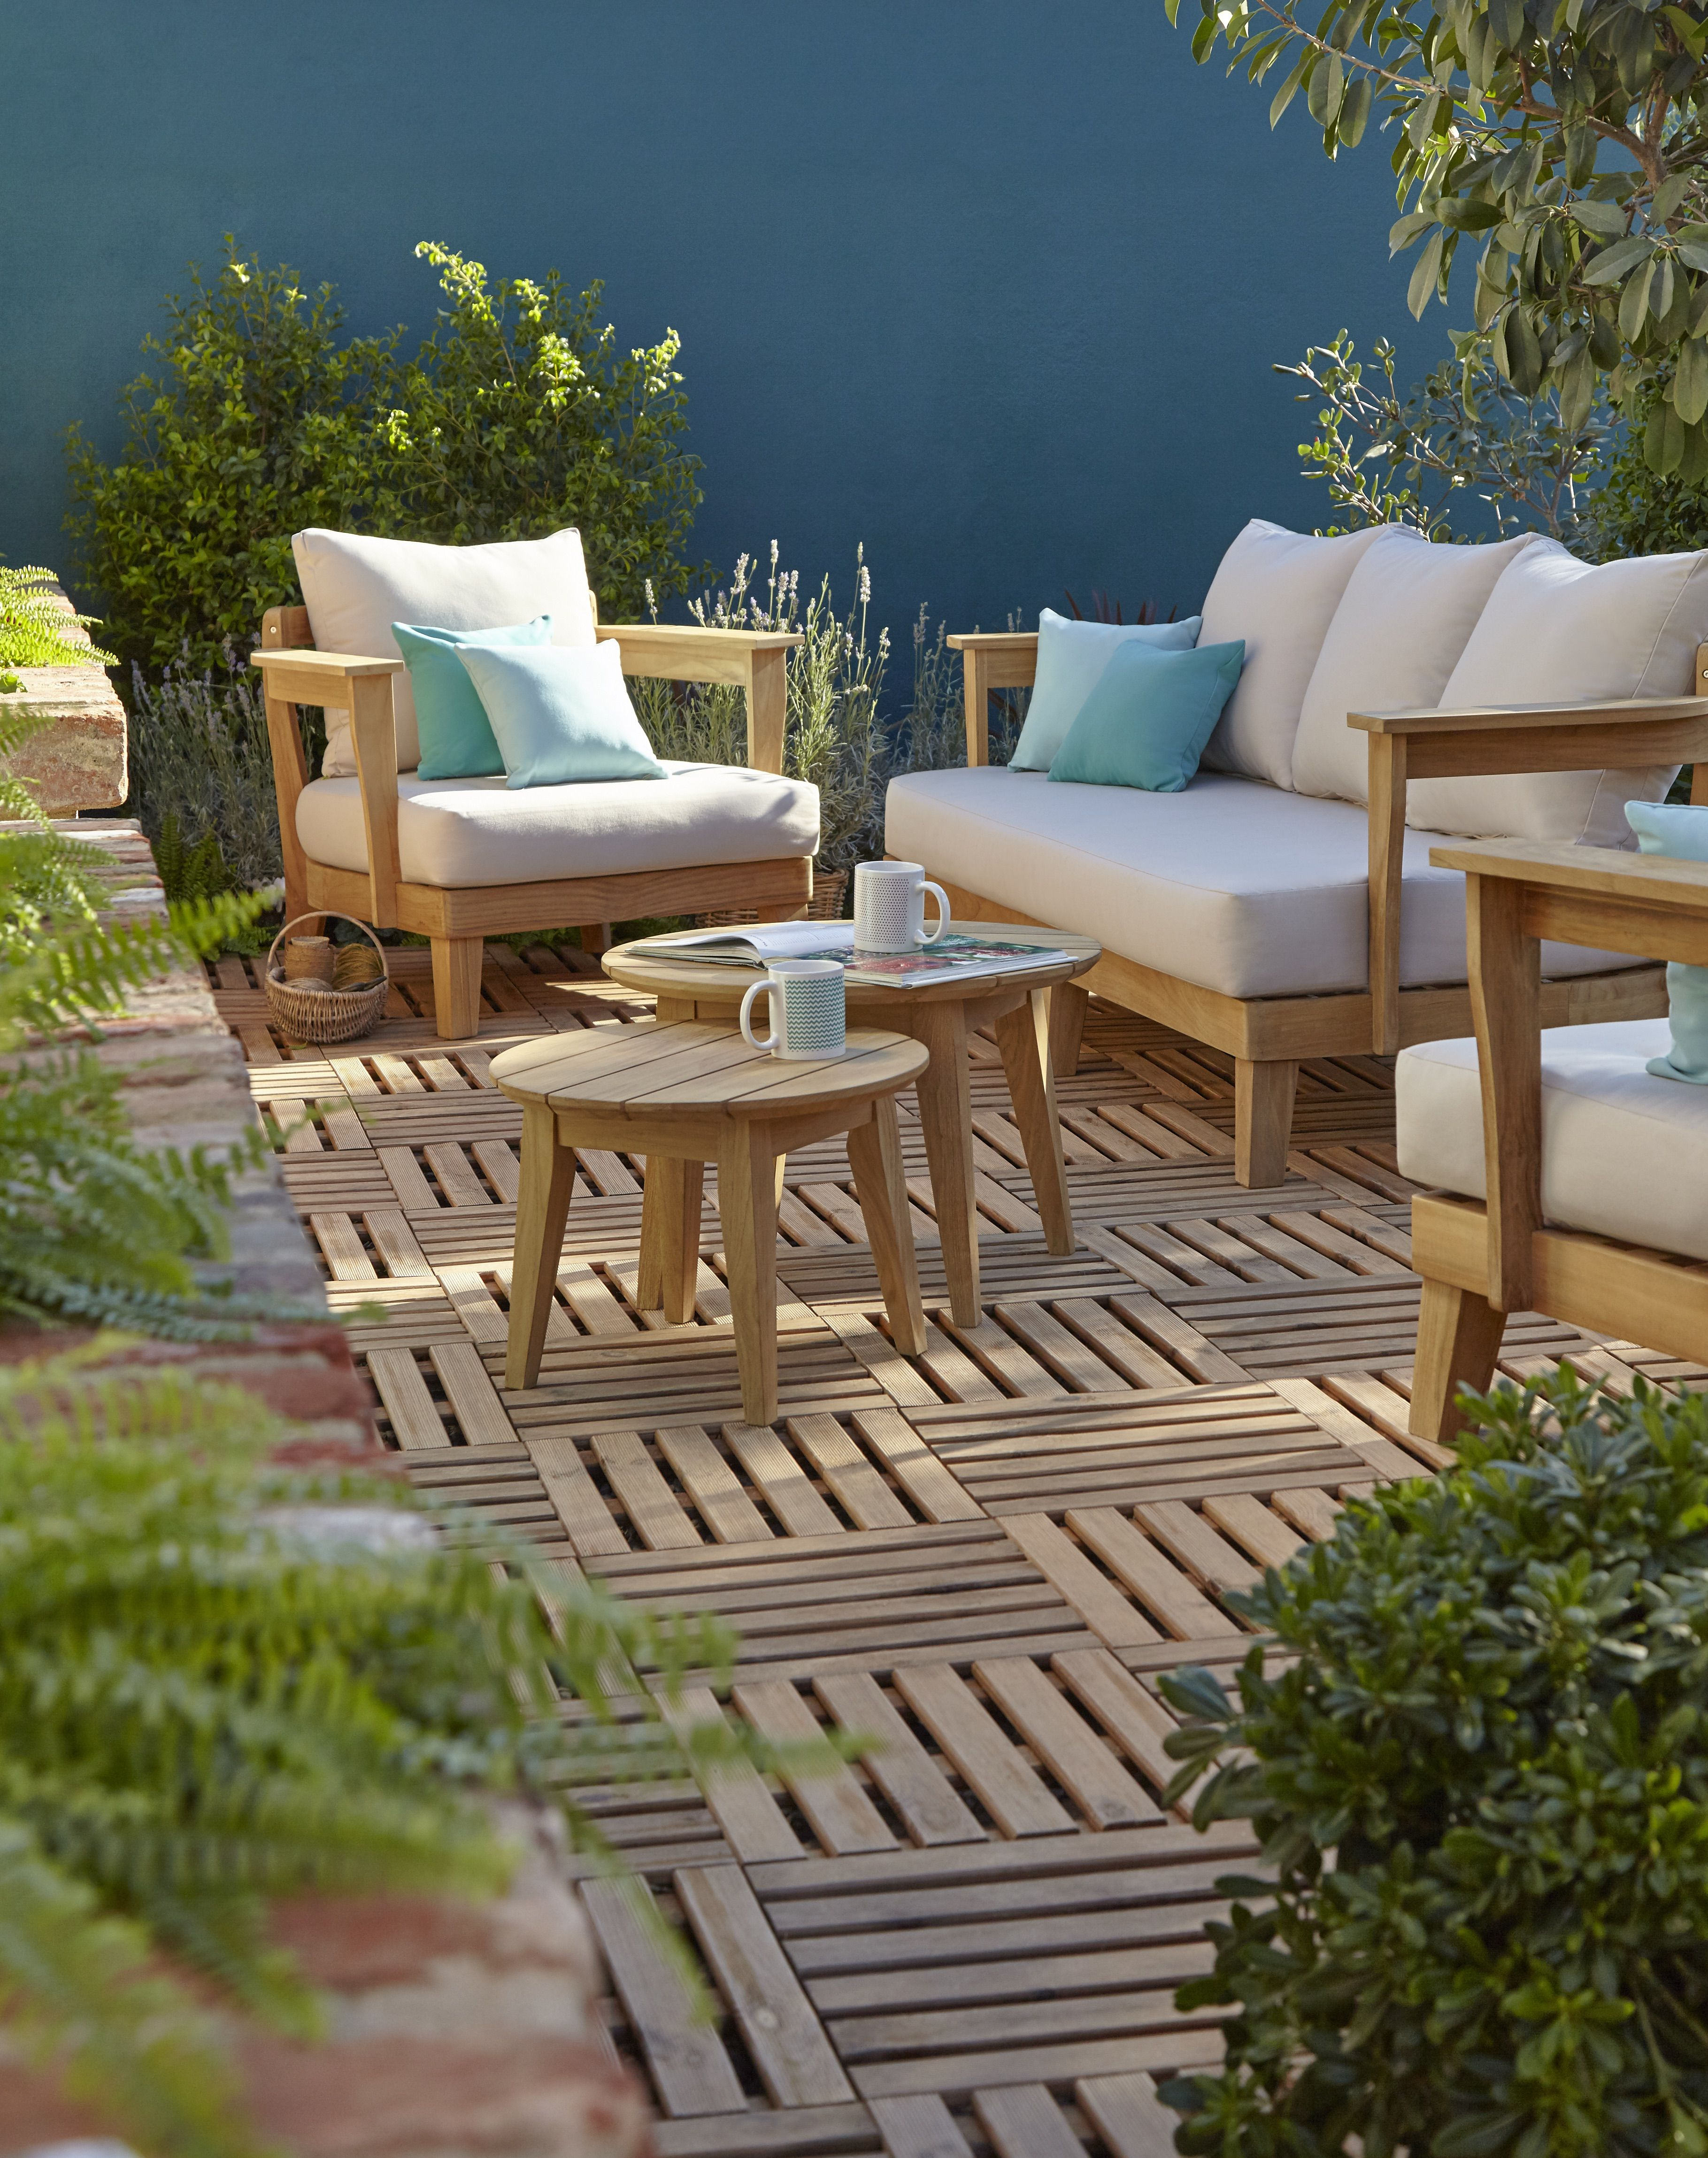 Clean Patio And Furniture Set